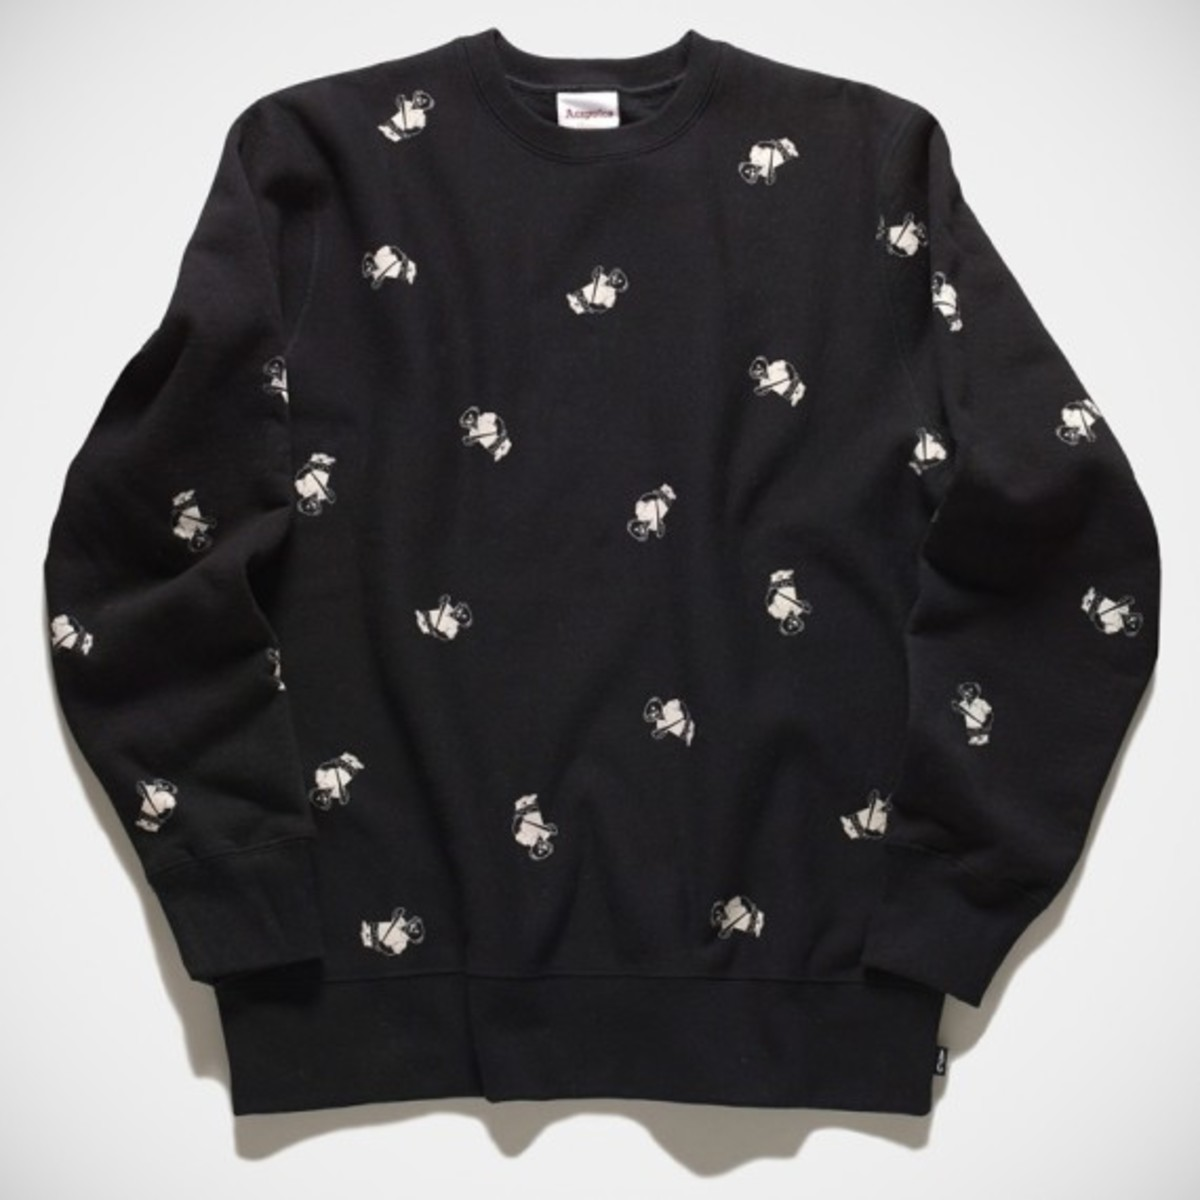 acapulco-gold-spring-2014-collection-delivery-1-09